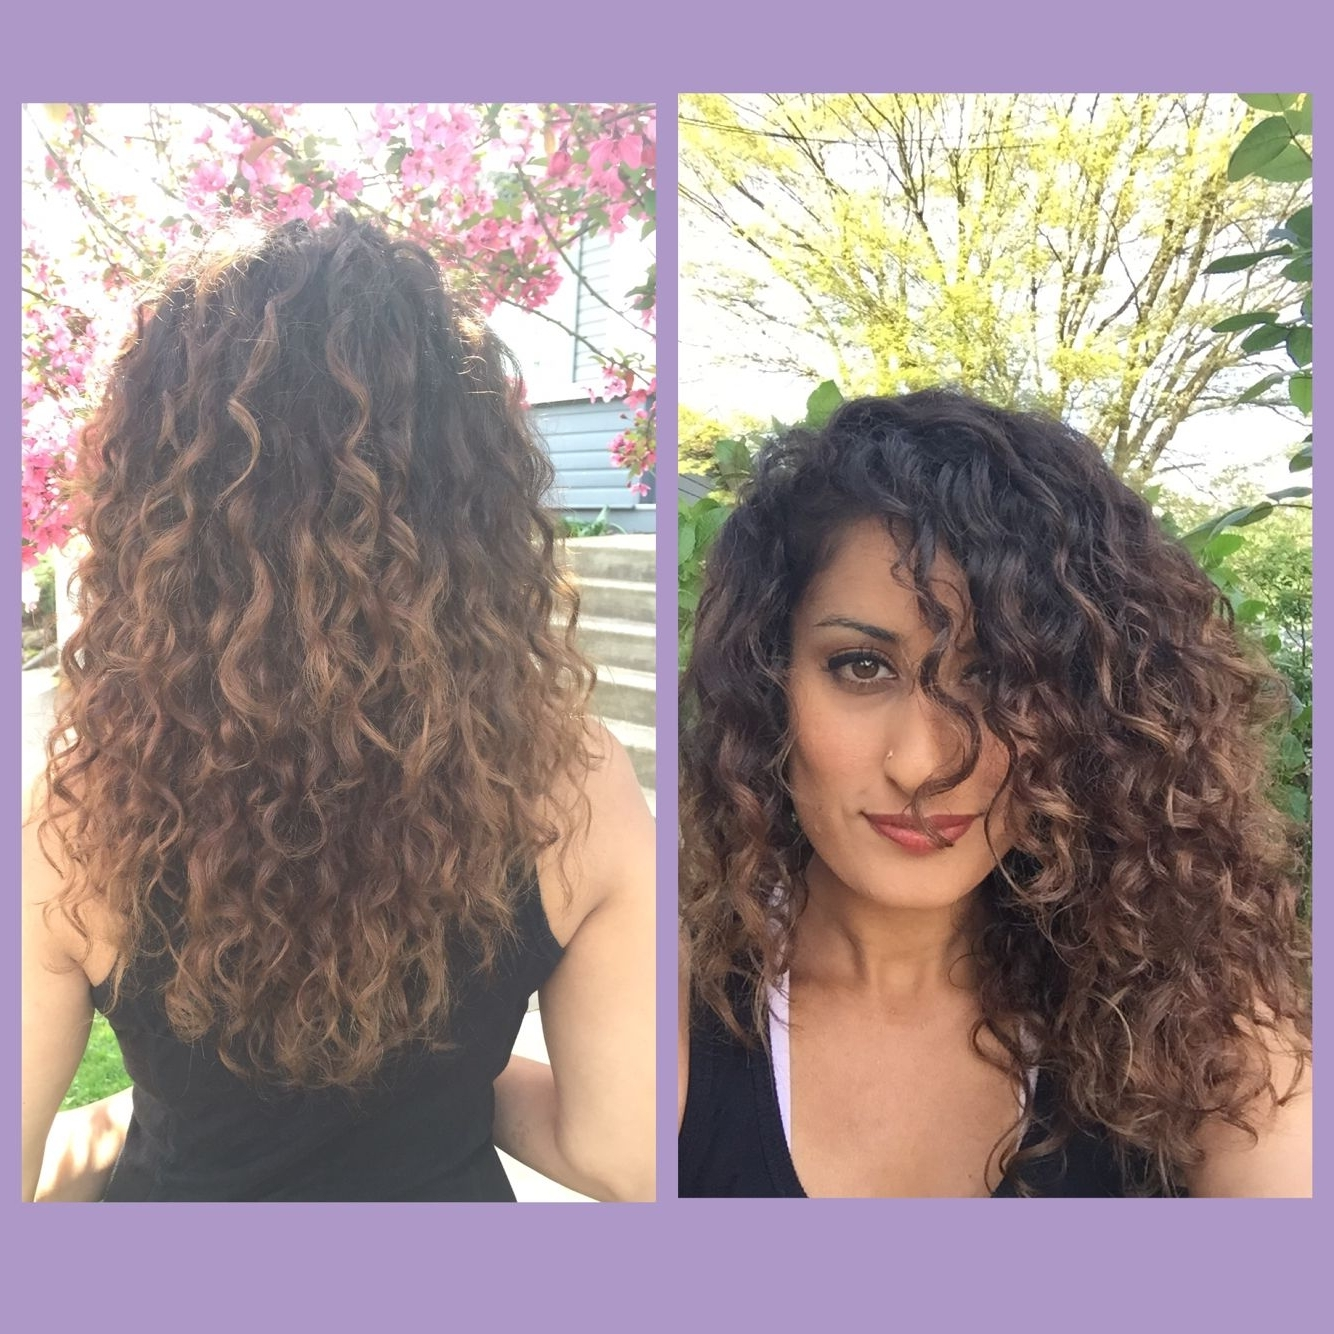 Balayage Hair Painting Naturally Curly Hair Dark Brown To Dark Within Favorite Brown To Blonde Ombre Curls Hairstyles (View 4 of 20)